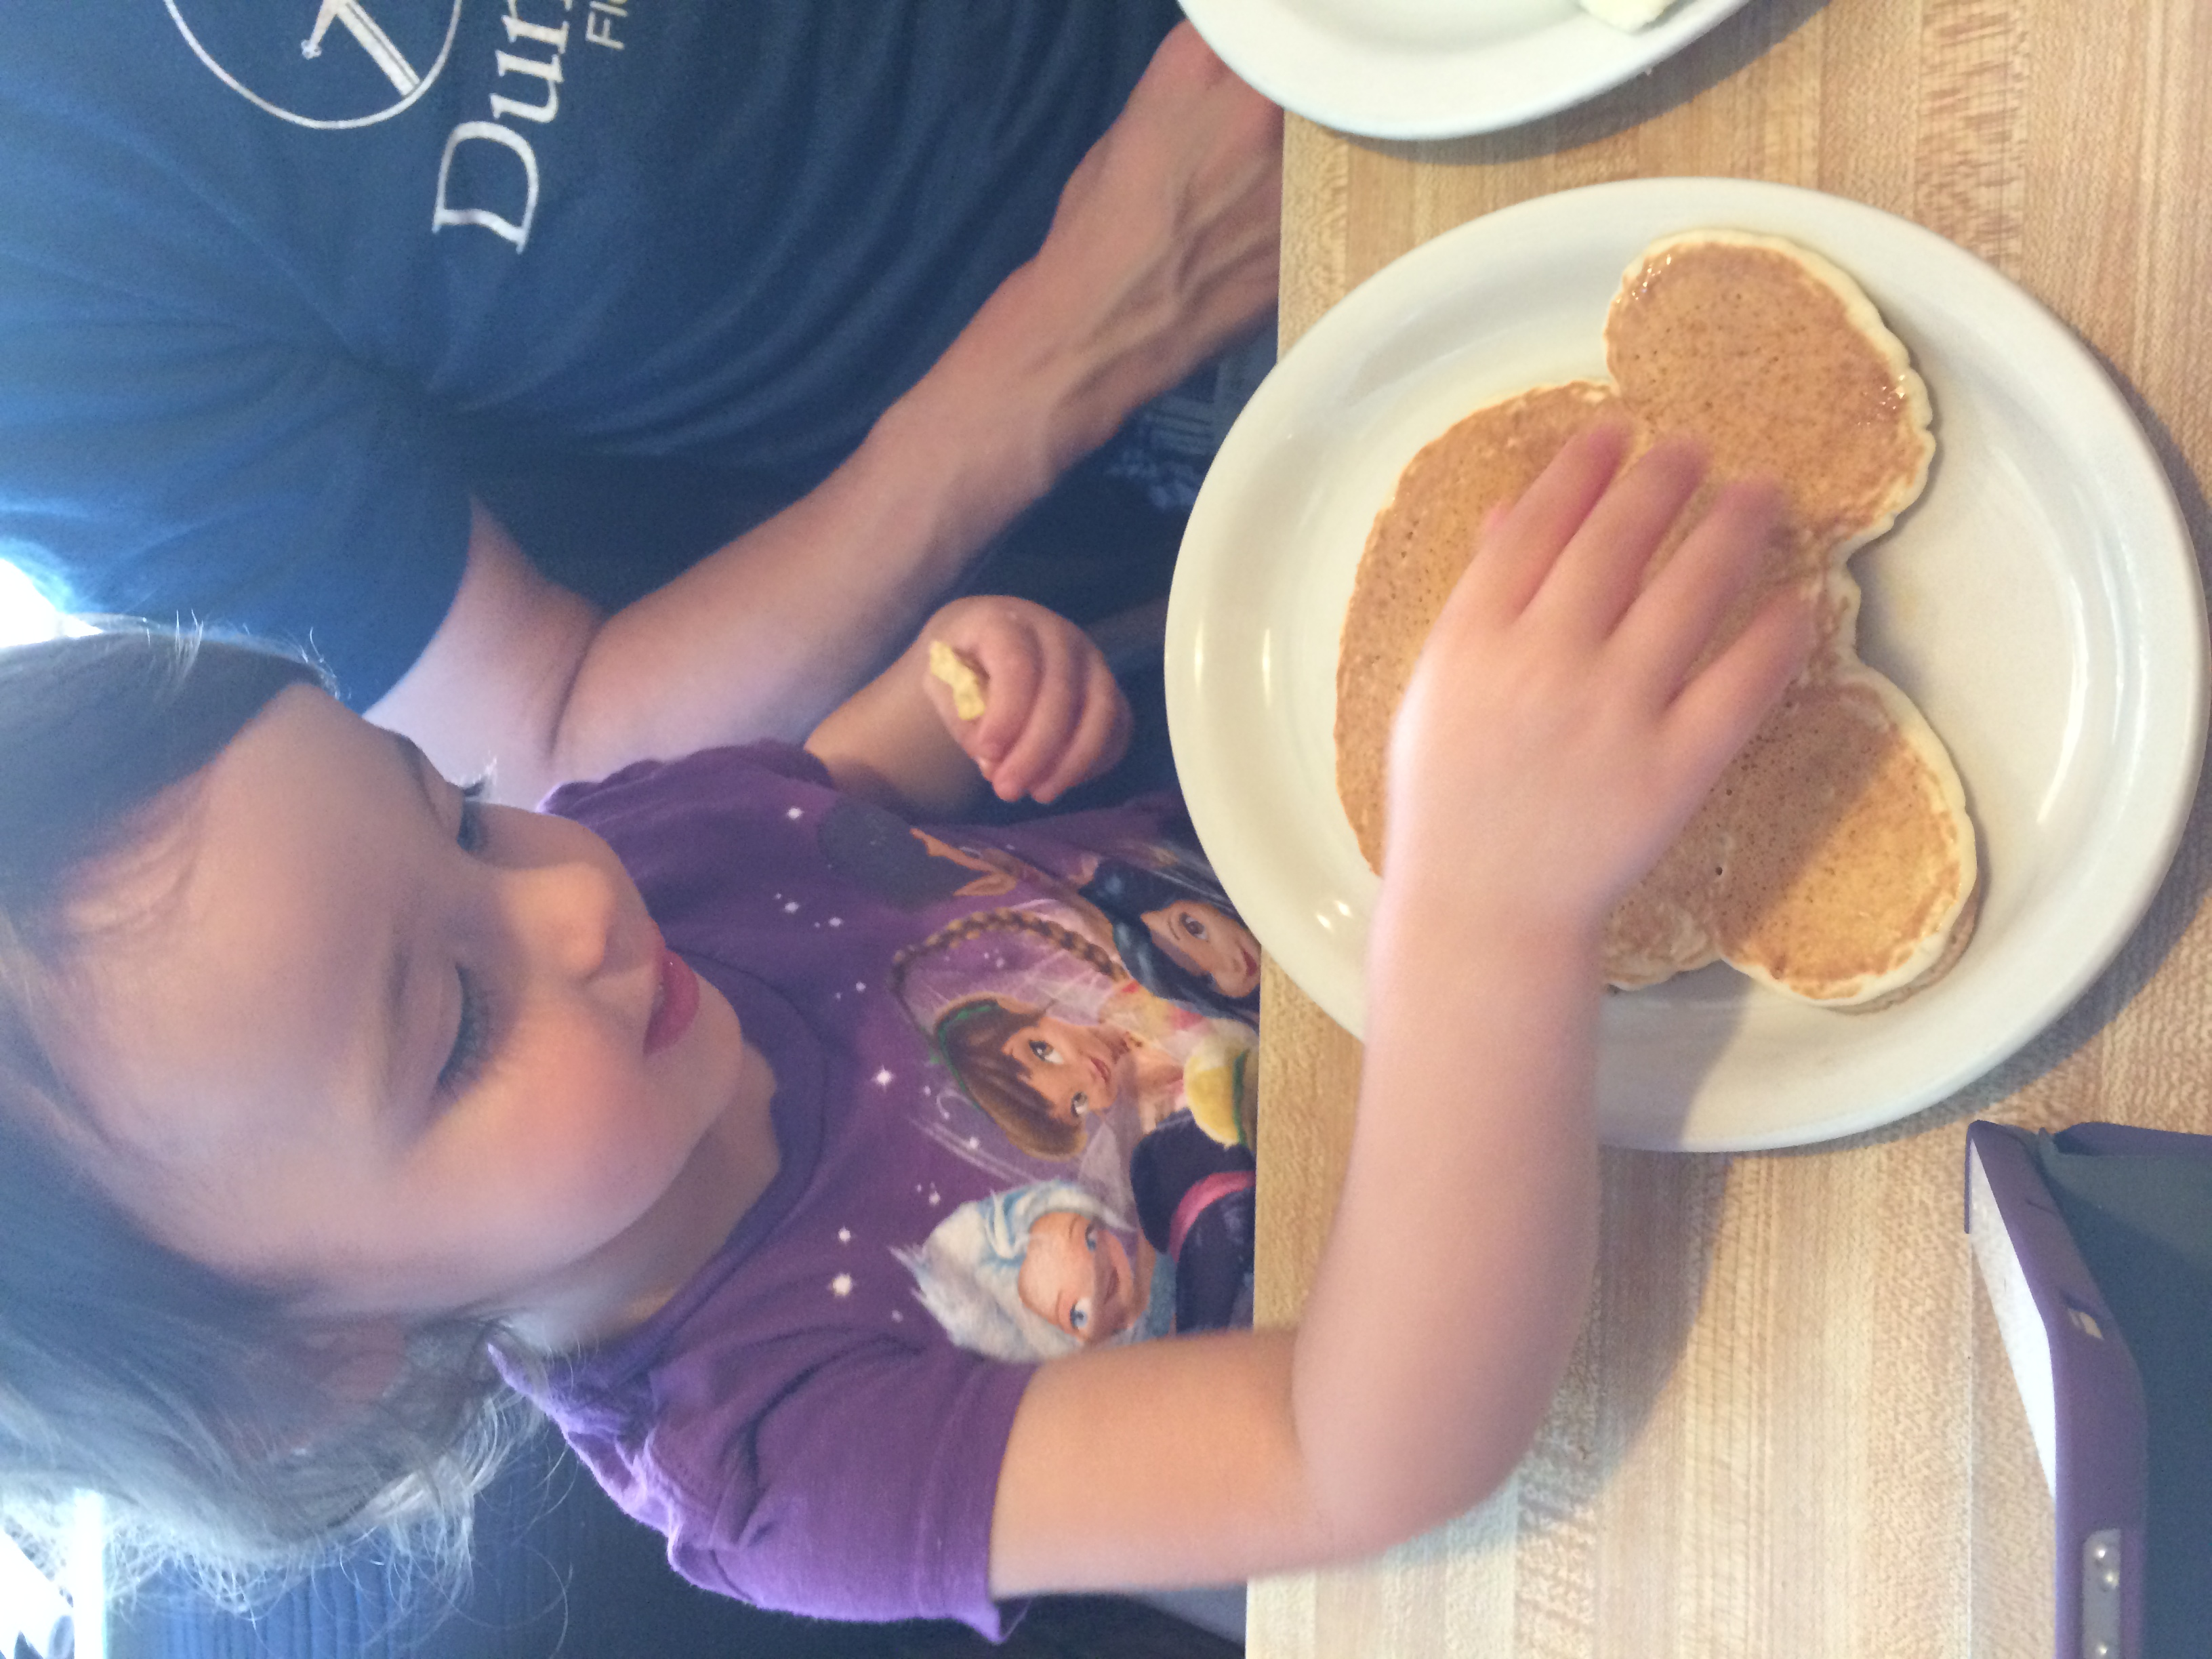 Mickey Mouse pancake at our local diner, Patsio's